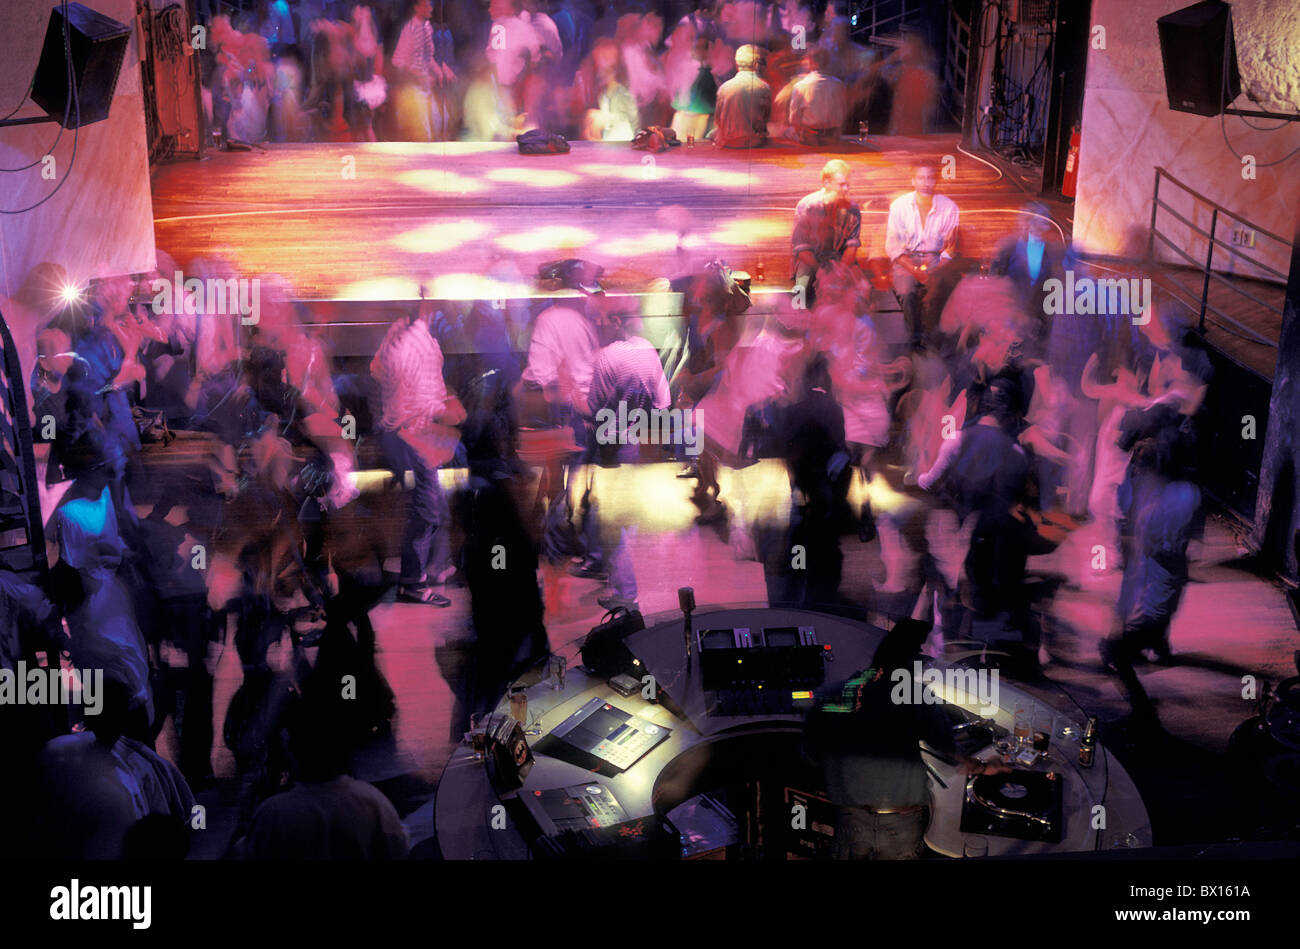 company dance dancing Disco DJ exit guests inside music nightlife no model release party people stage - Stock Image